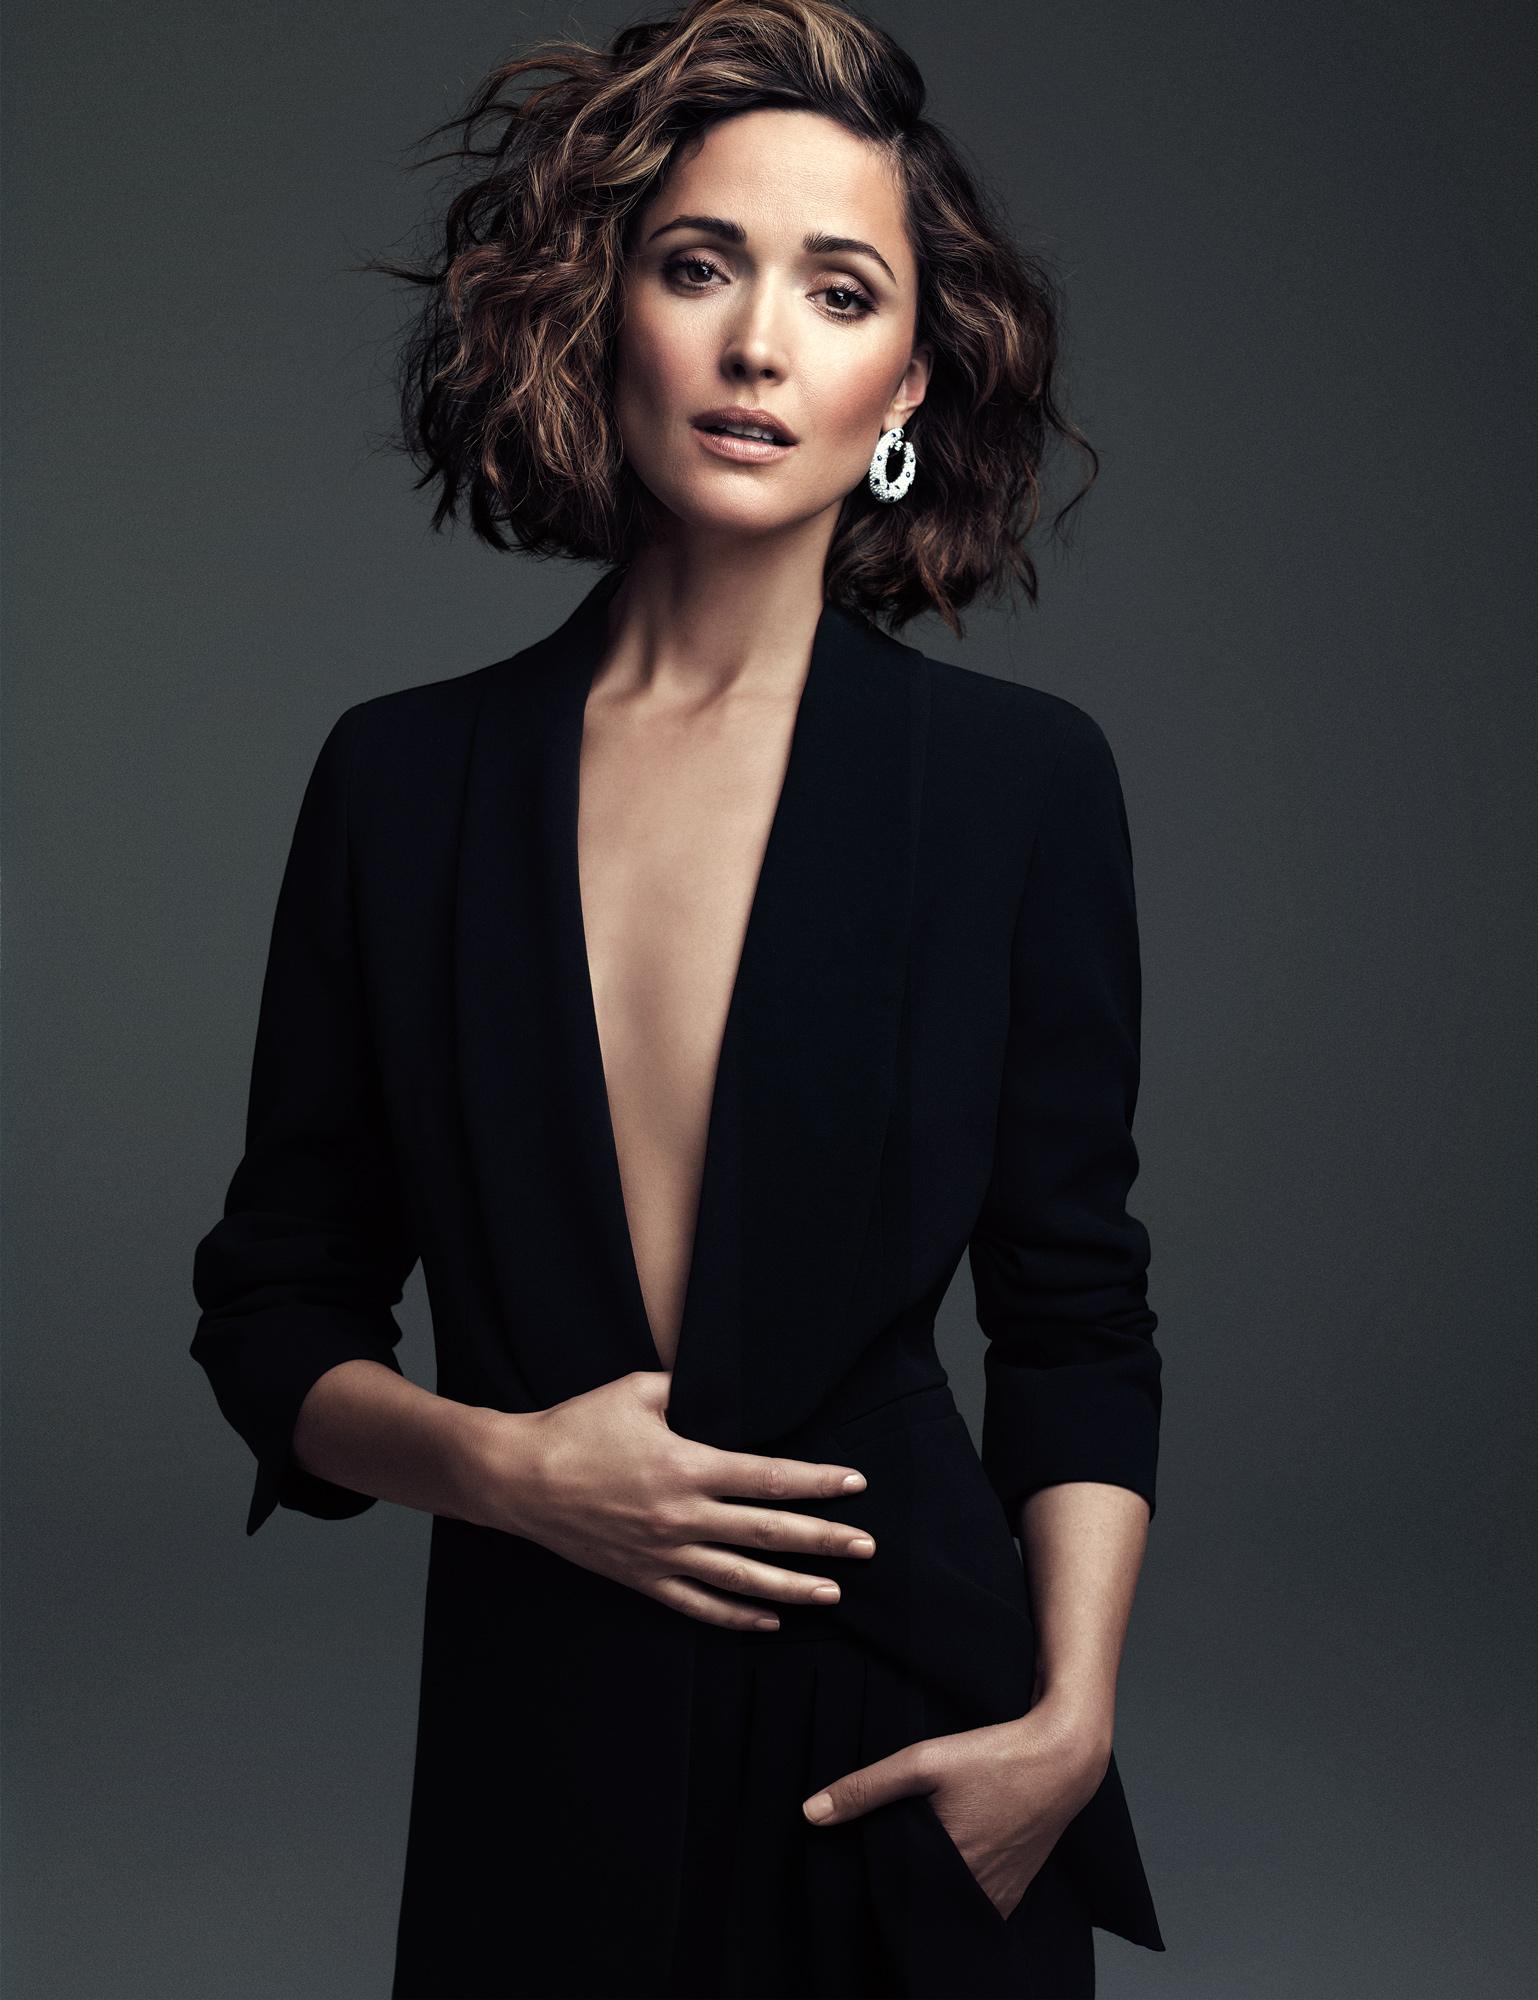 rose-byrne-photos